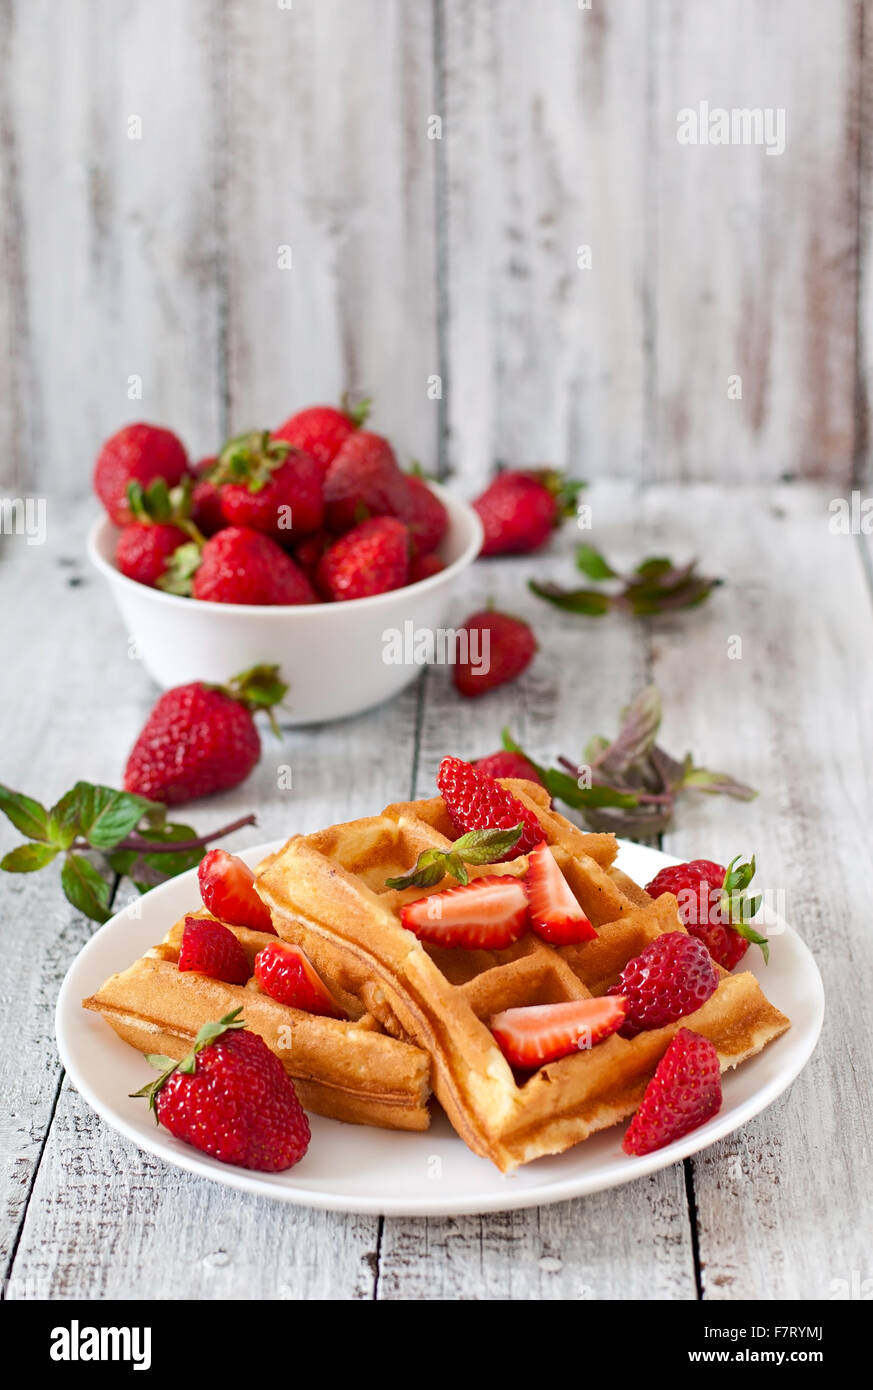 Belgium waffles with strawberries and mint on white plate. - Stock Image